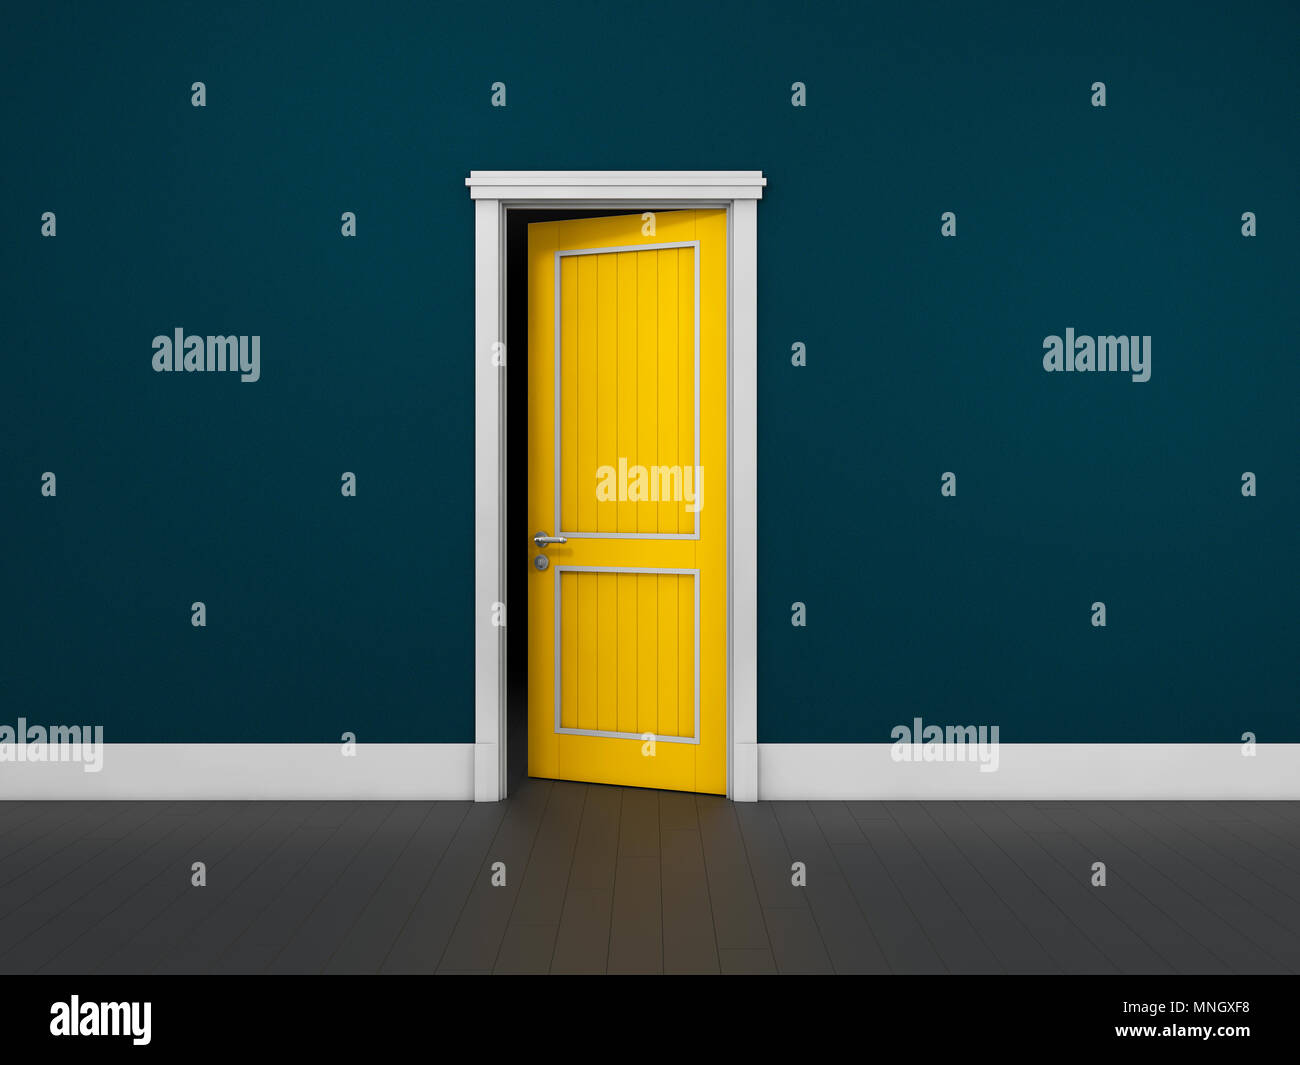 Opened door in a blue room. Chromatic image. 3d Illustration.  sc 1 st  Alamy & Opened door in a blue room. Chromatic image. 3d Illustration Stock ...